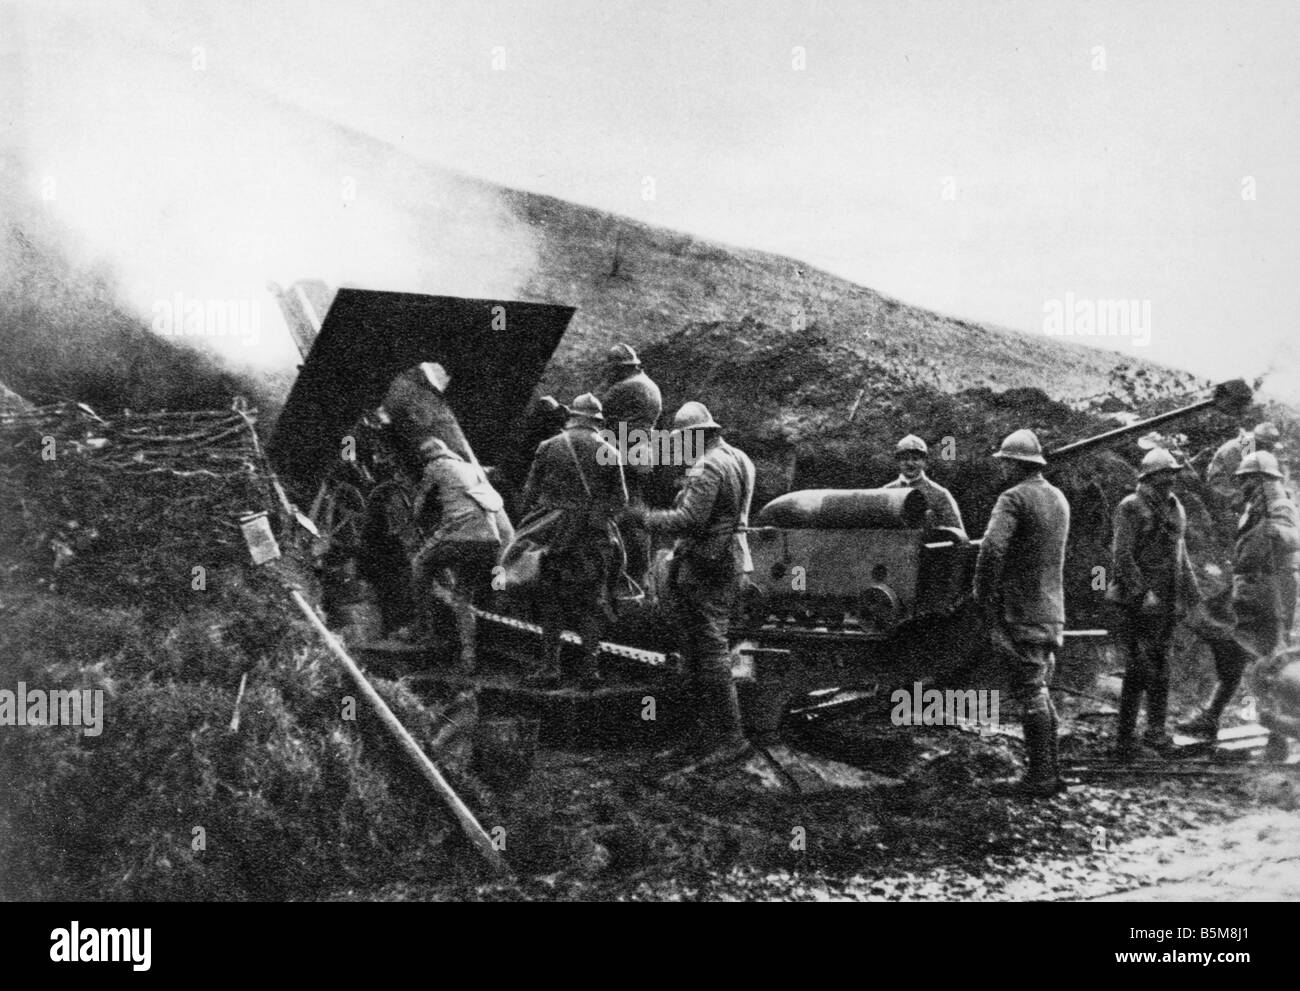 2 G55 F1 1918 7 WW1 France French Artillery 1918 History World War One French During the Battle at Aspach French - Stock Image